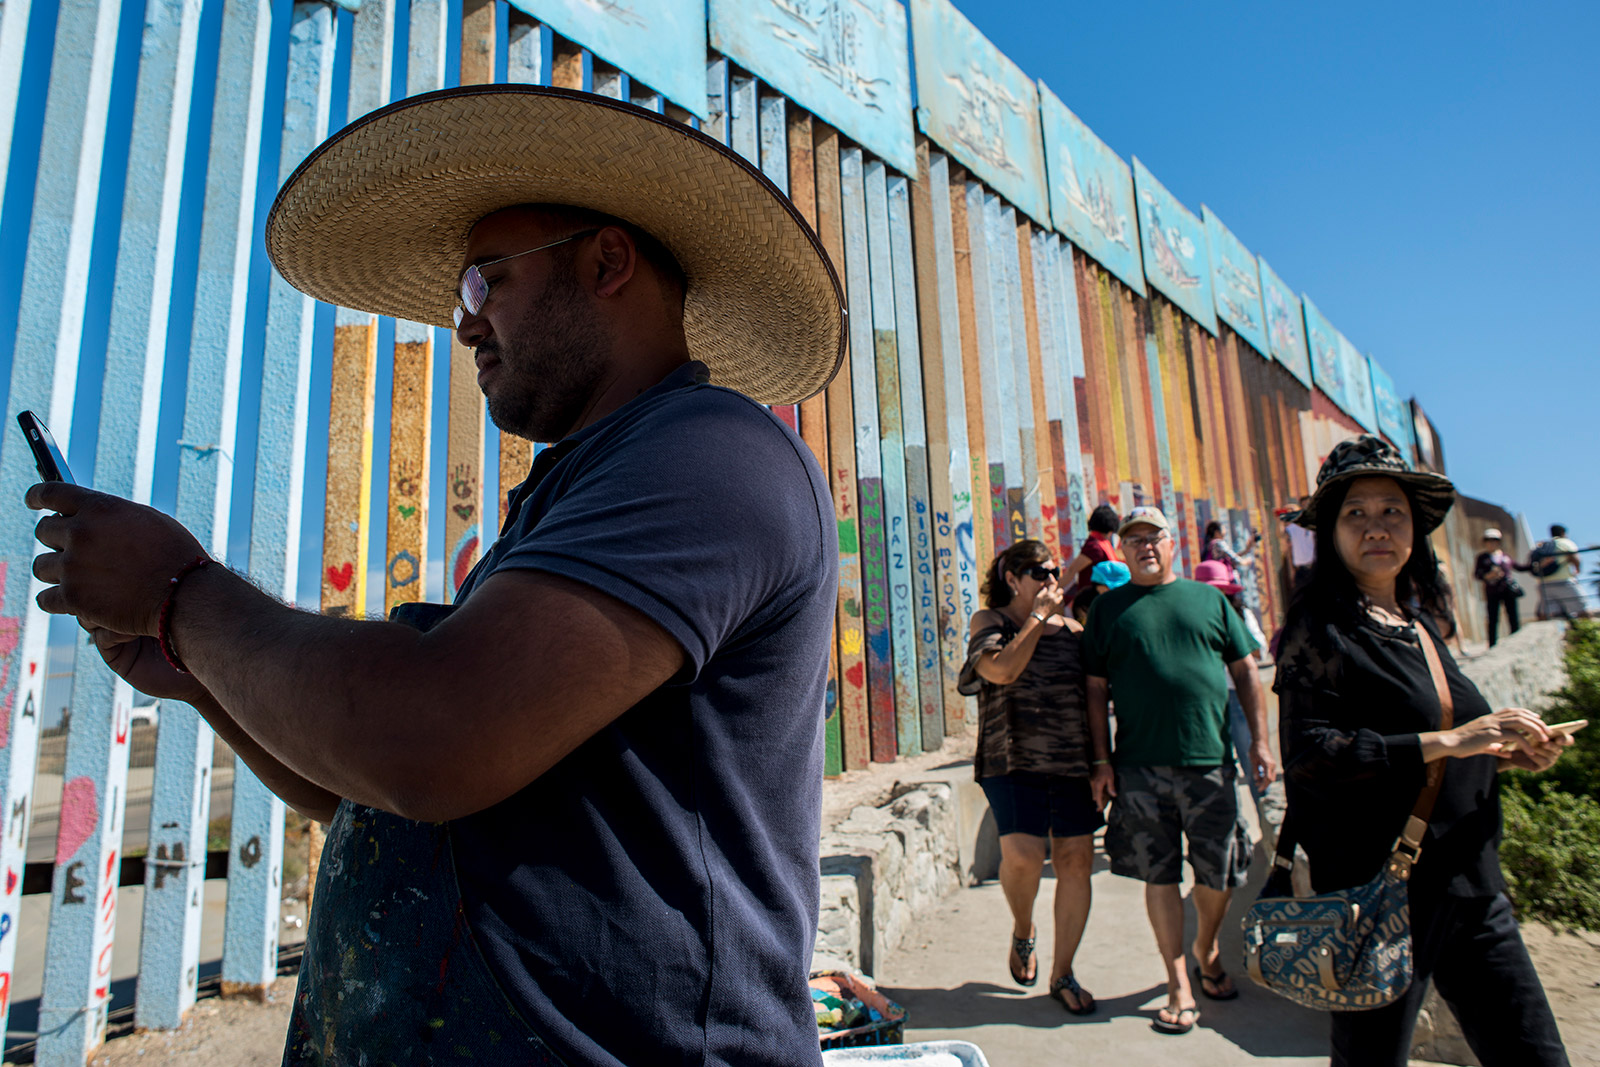 Enrique Chiu, a Tijuana-based muralist painting the U.S.-Mexico border fence, checks a phone message on Oct. 7, 2017, as tourists and visitors to Friendship Park in Tijuana walk by and watch. <em>(Brandon Quester/inewsource)</em>